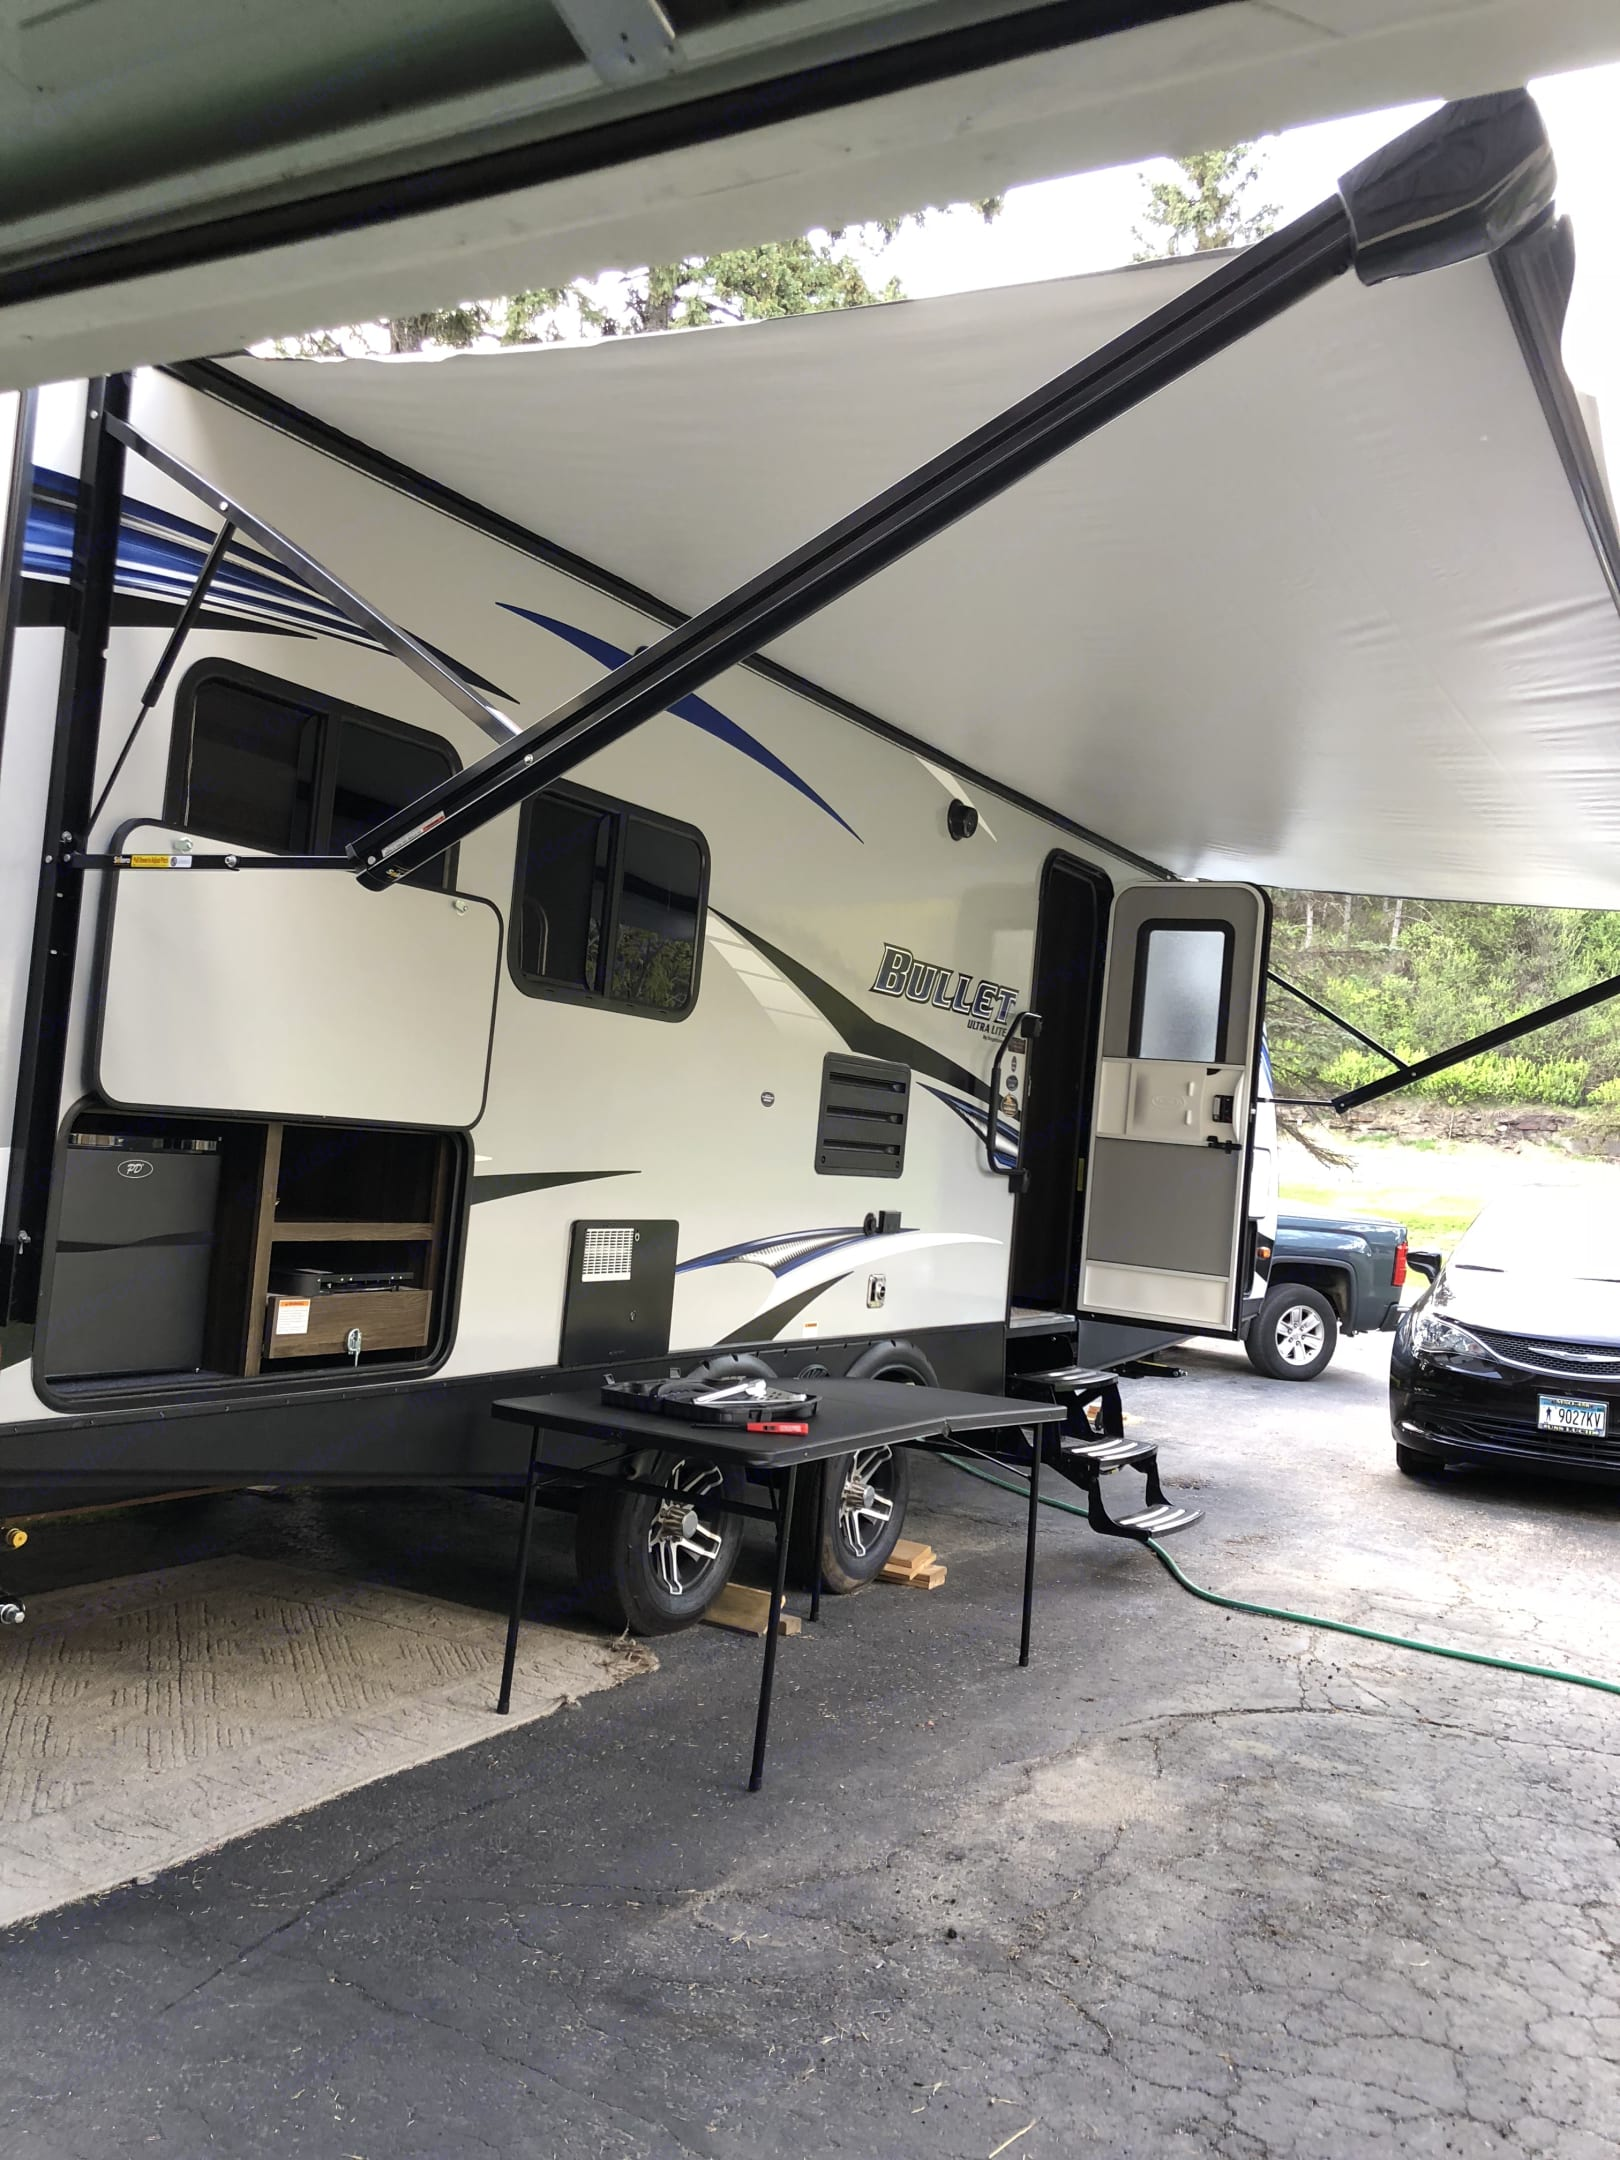 Picture is side of travel trailer showing entrance and outdoor kitchen. Keystone Bullet 2018